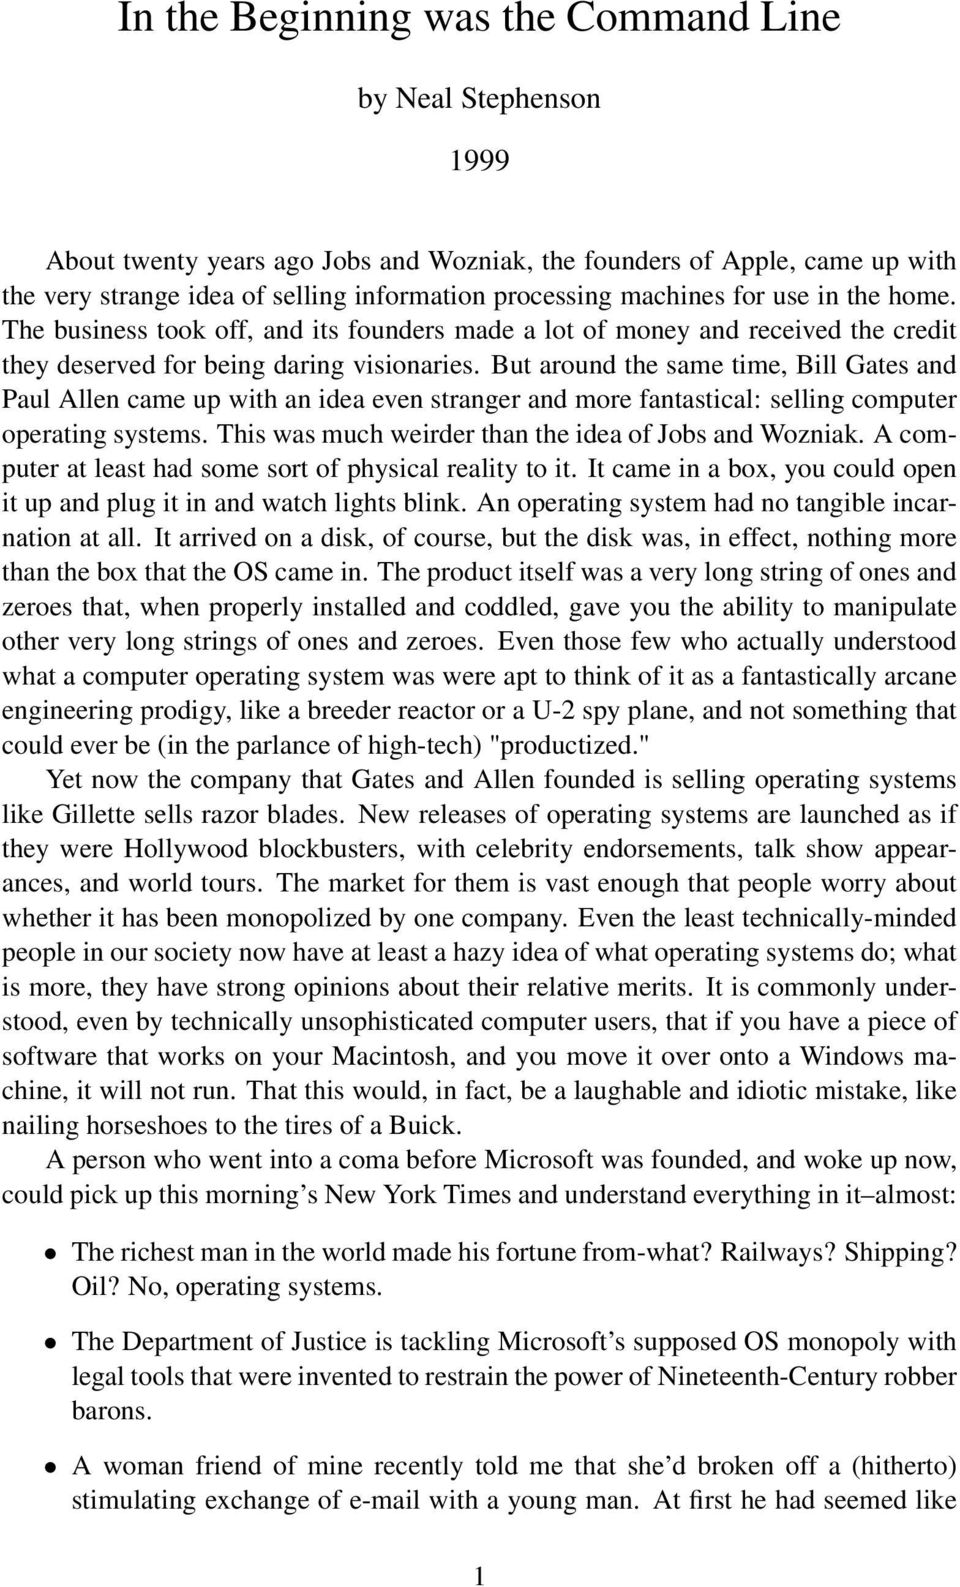 But around the same time, Bill Gates and Paul Allen came up with an idea even stranger and more fantastical: selling computer operating systems.